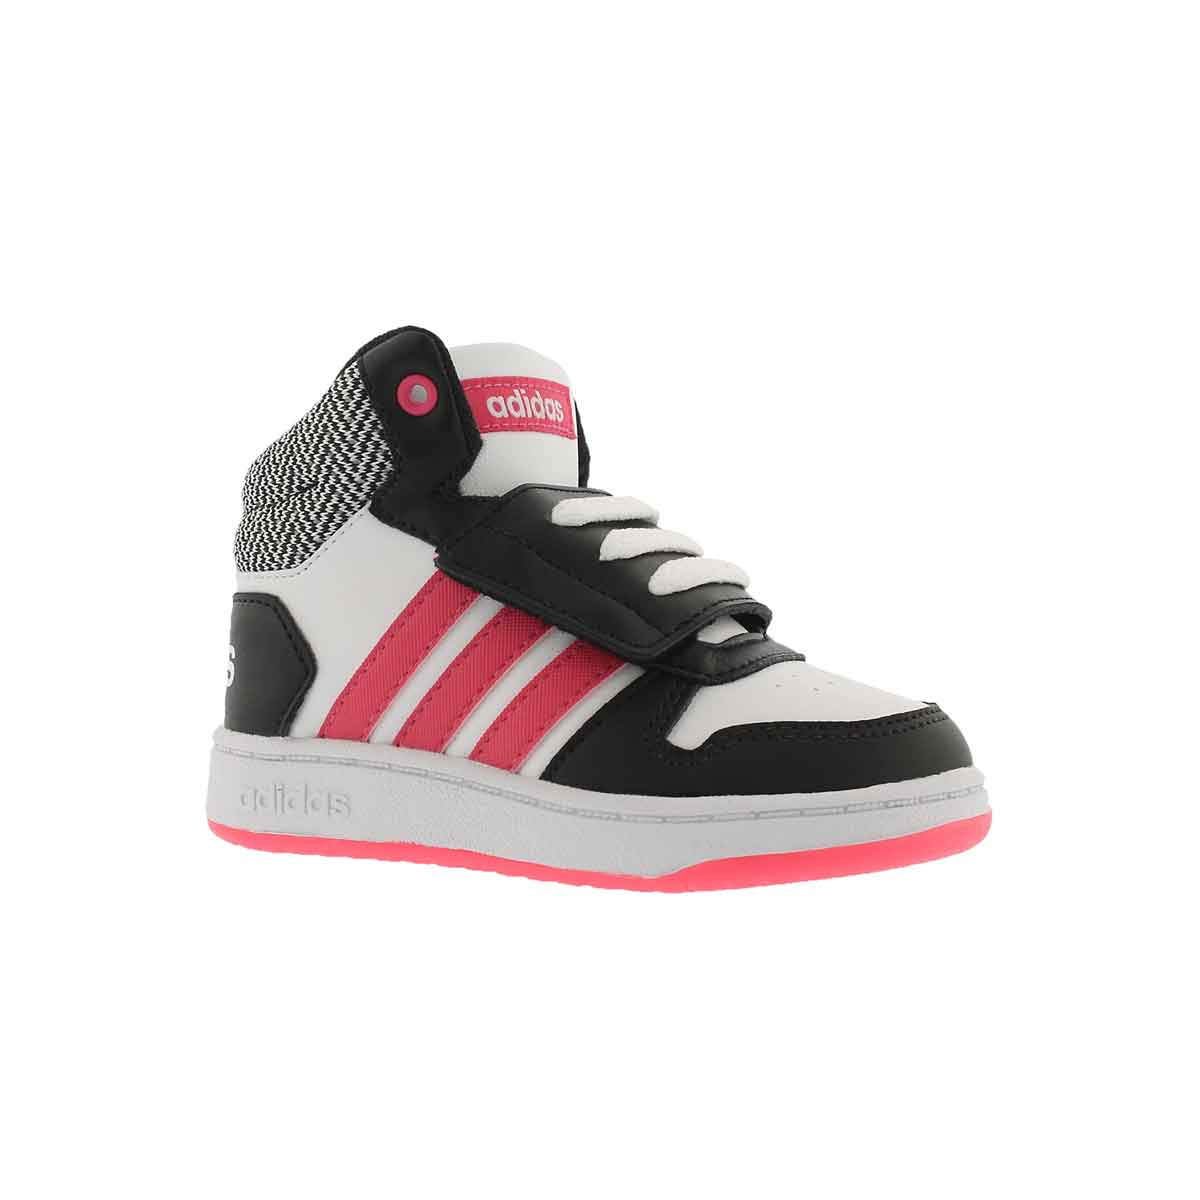 Infants' v5 HOOPS MID 2.0 wht/pnk high sneakers